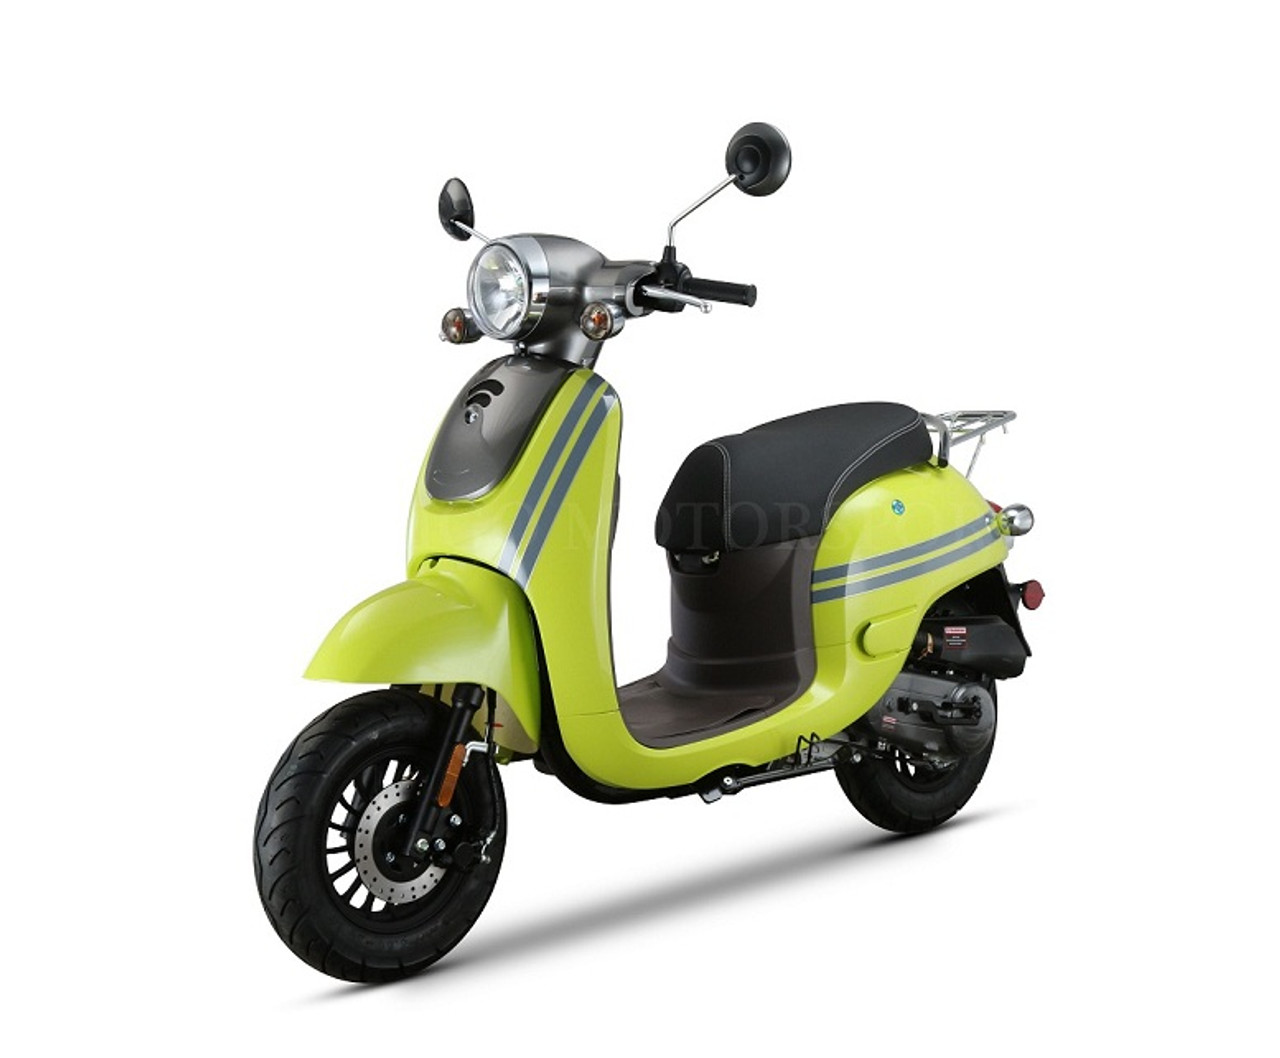 Amigo Citi-50 4 Stroke Gas Moped Scooter,  USB Port